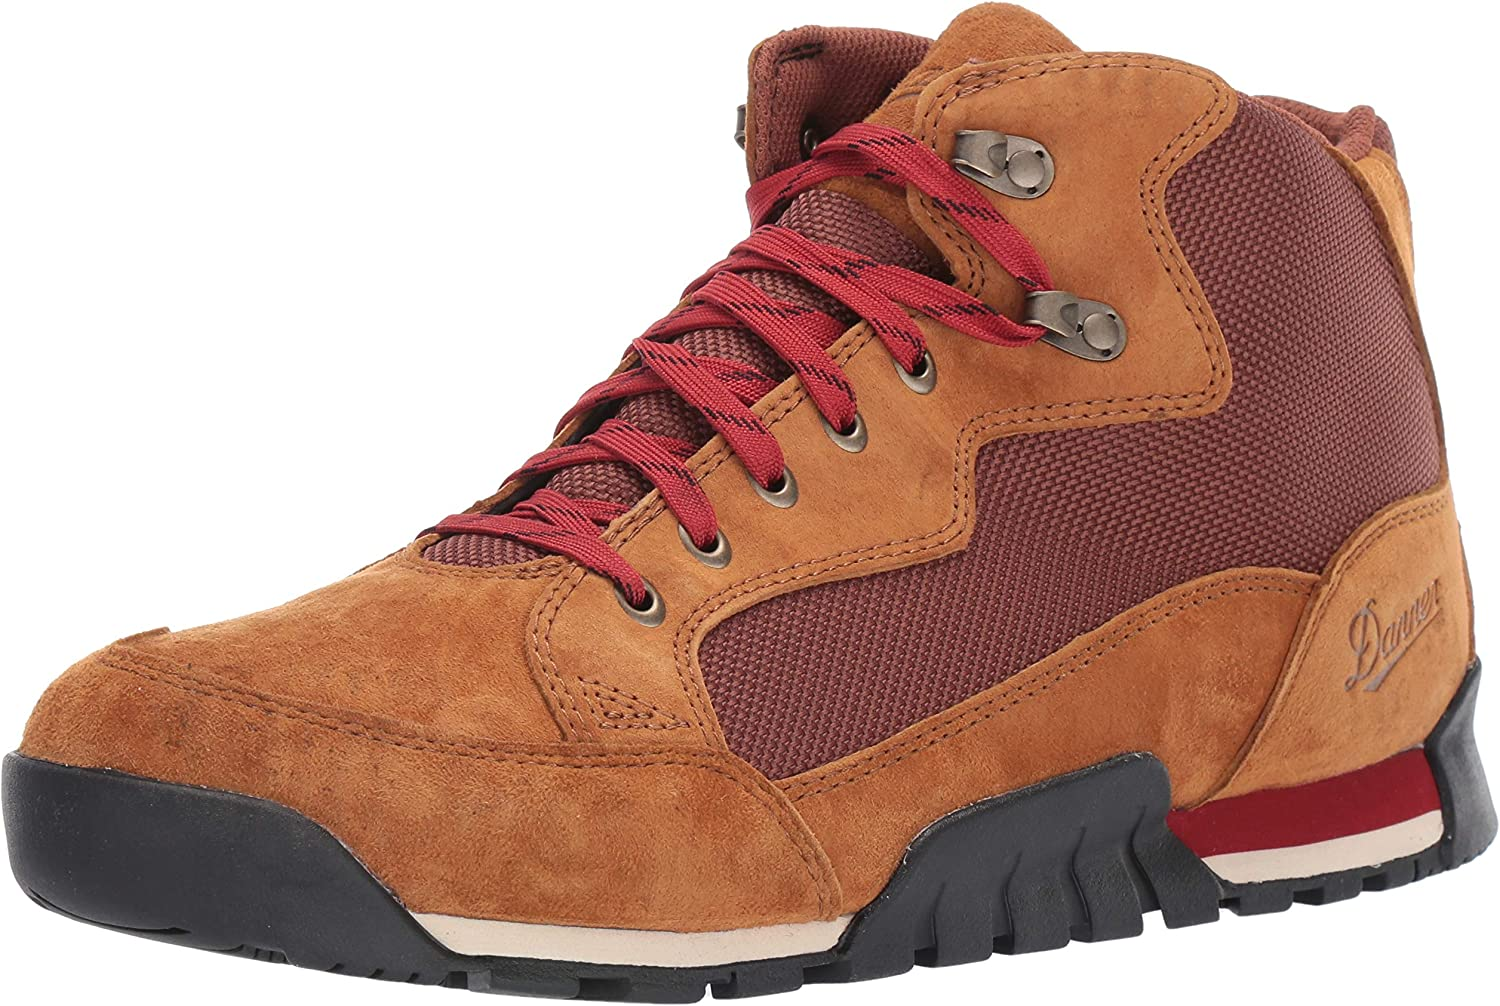 "Danner Men's Skyridge 4.5"" Waterproof Lifestyle Boot"